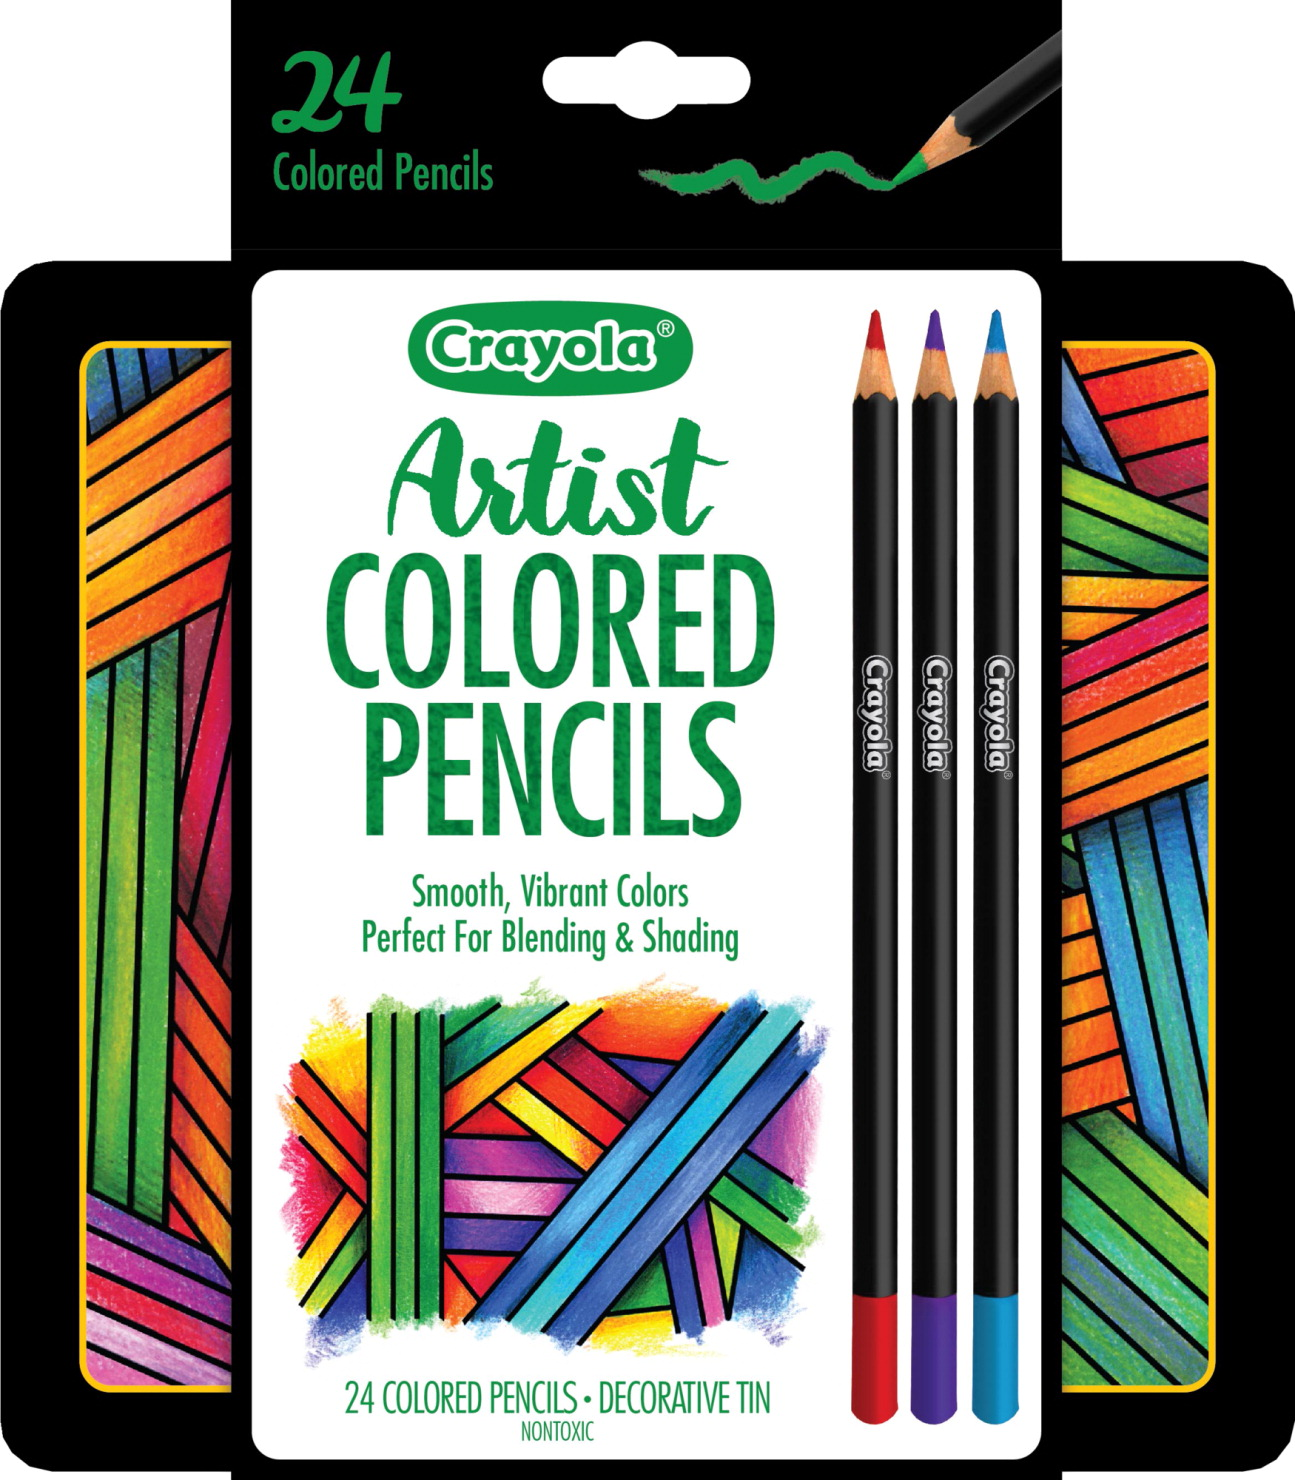 Crayola Colored Pencils, Assorted Colors - SOAR Life Products